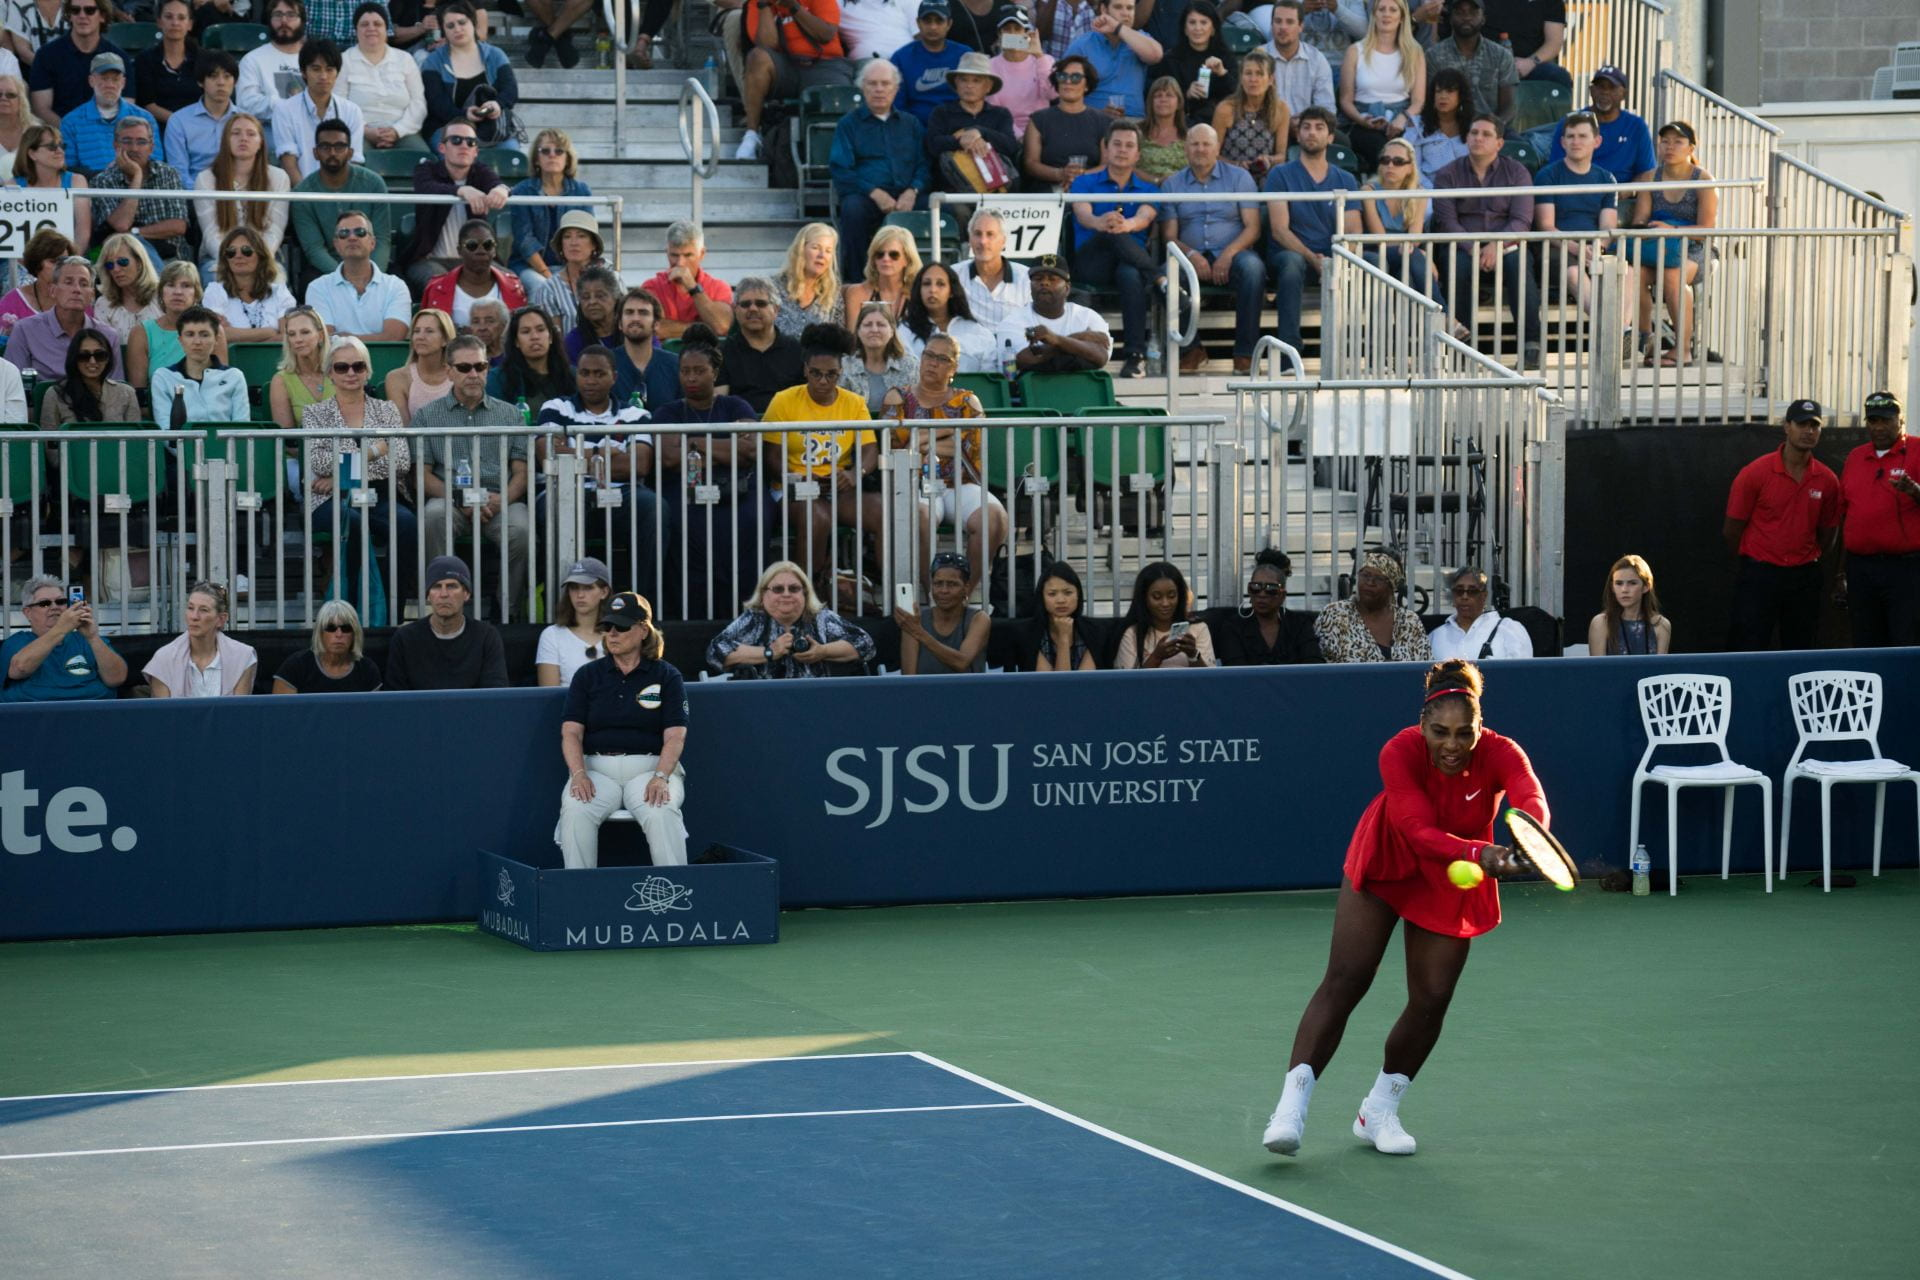 Venus Williams will compete in the Mubadala Silicon Valley Classic for the 15th year--and the second year at San Jose State--on July 30. (Photo: James Tensuan, '15 Journalism)